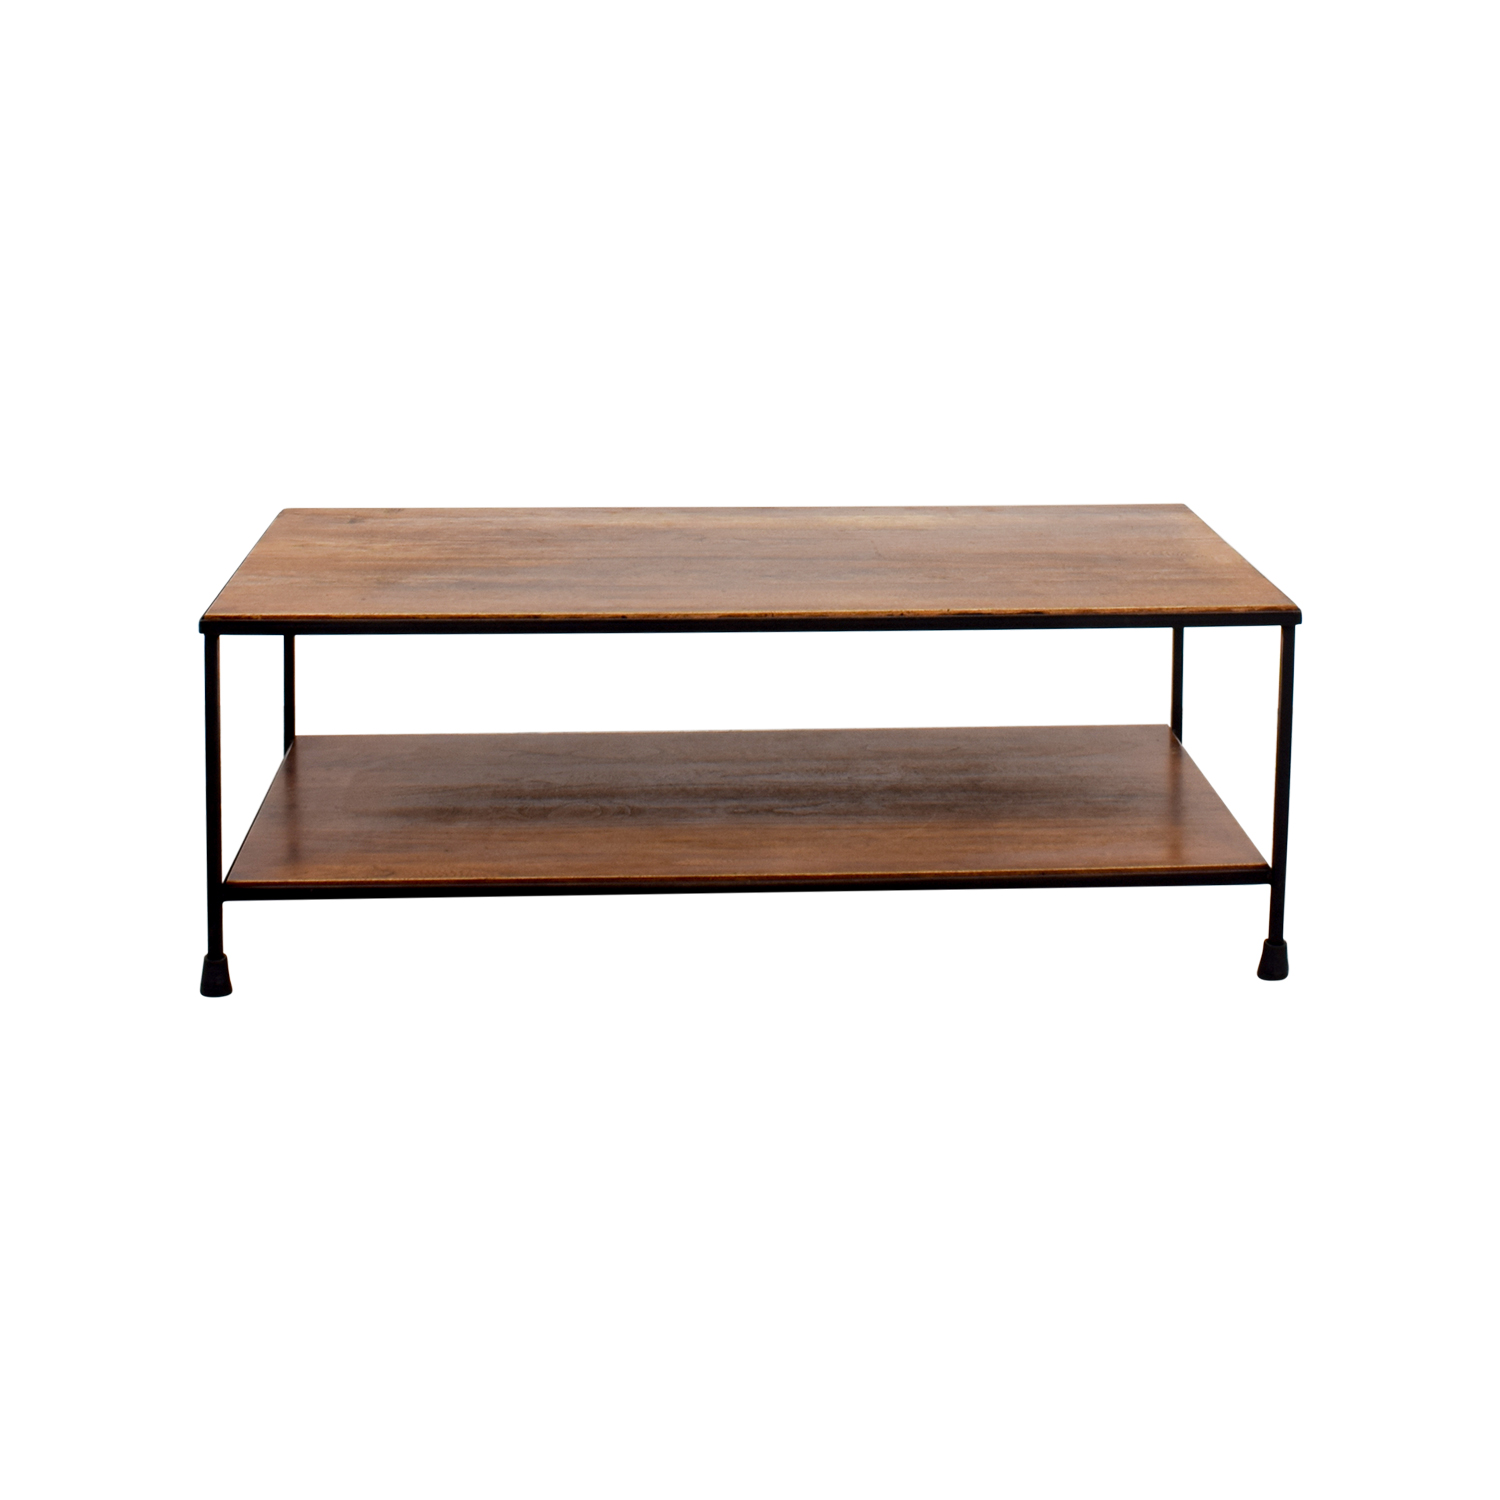 52% OFF Pottery Barn Pottery Barn Wood and Metal Coffee Table